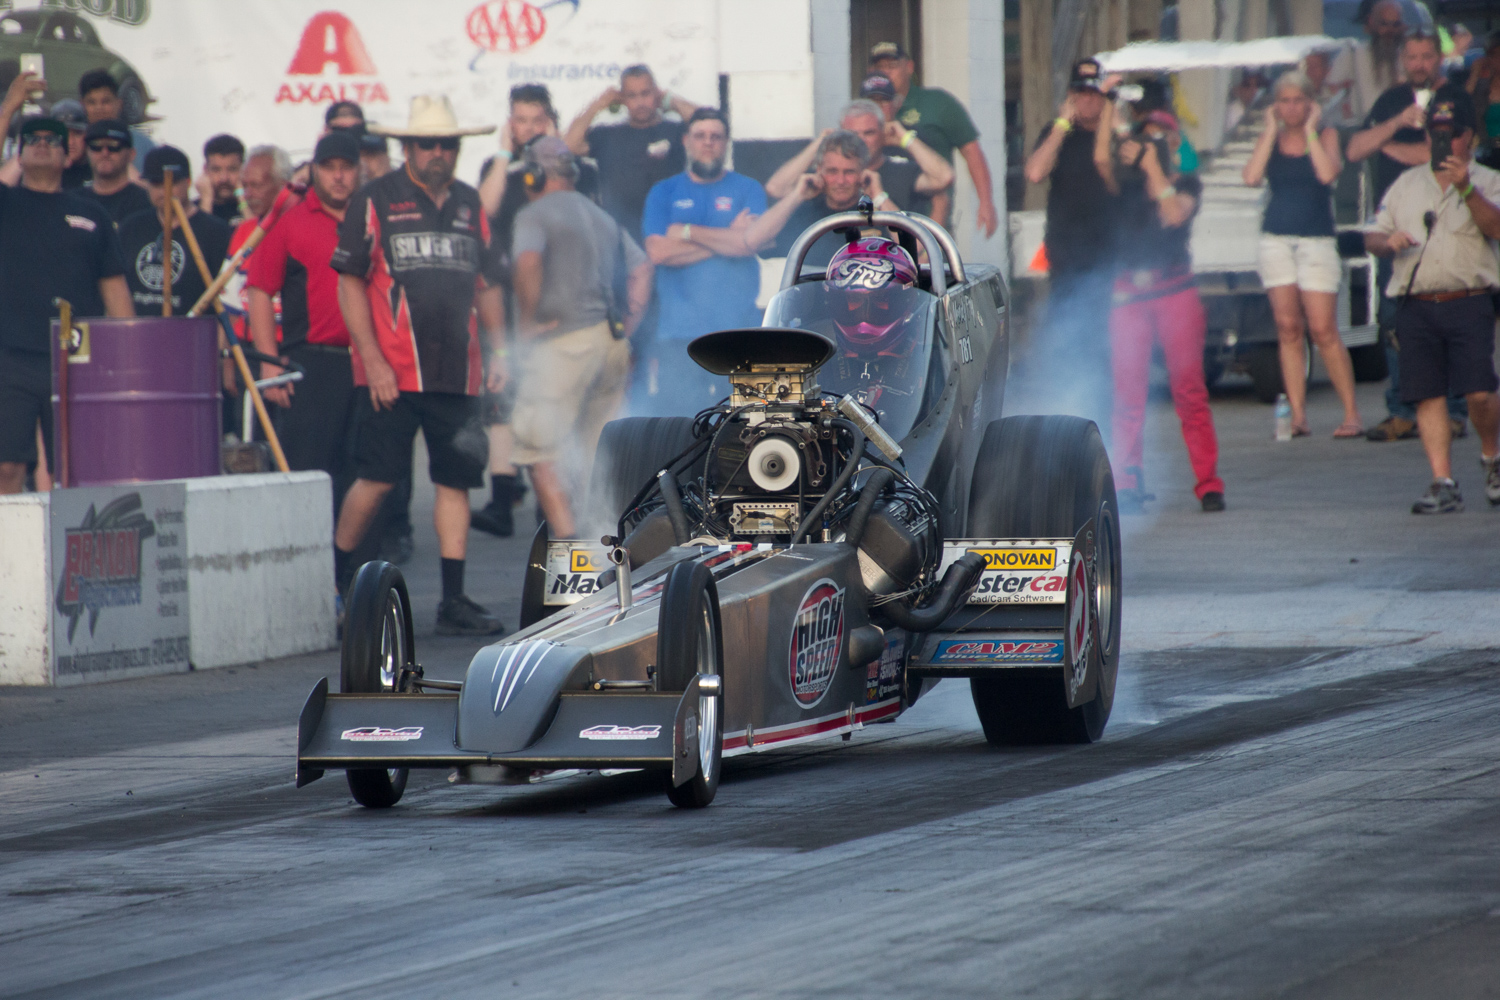 Mendy Fry heats up the tires in the High-Speed Motorsports dragster.